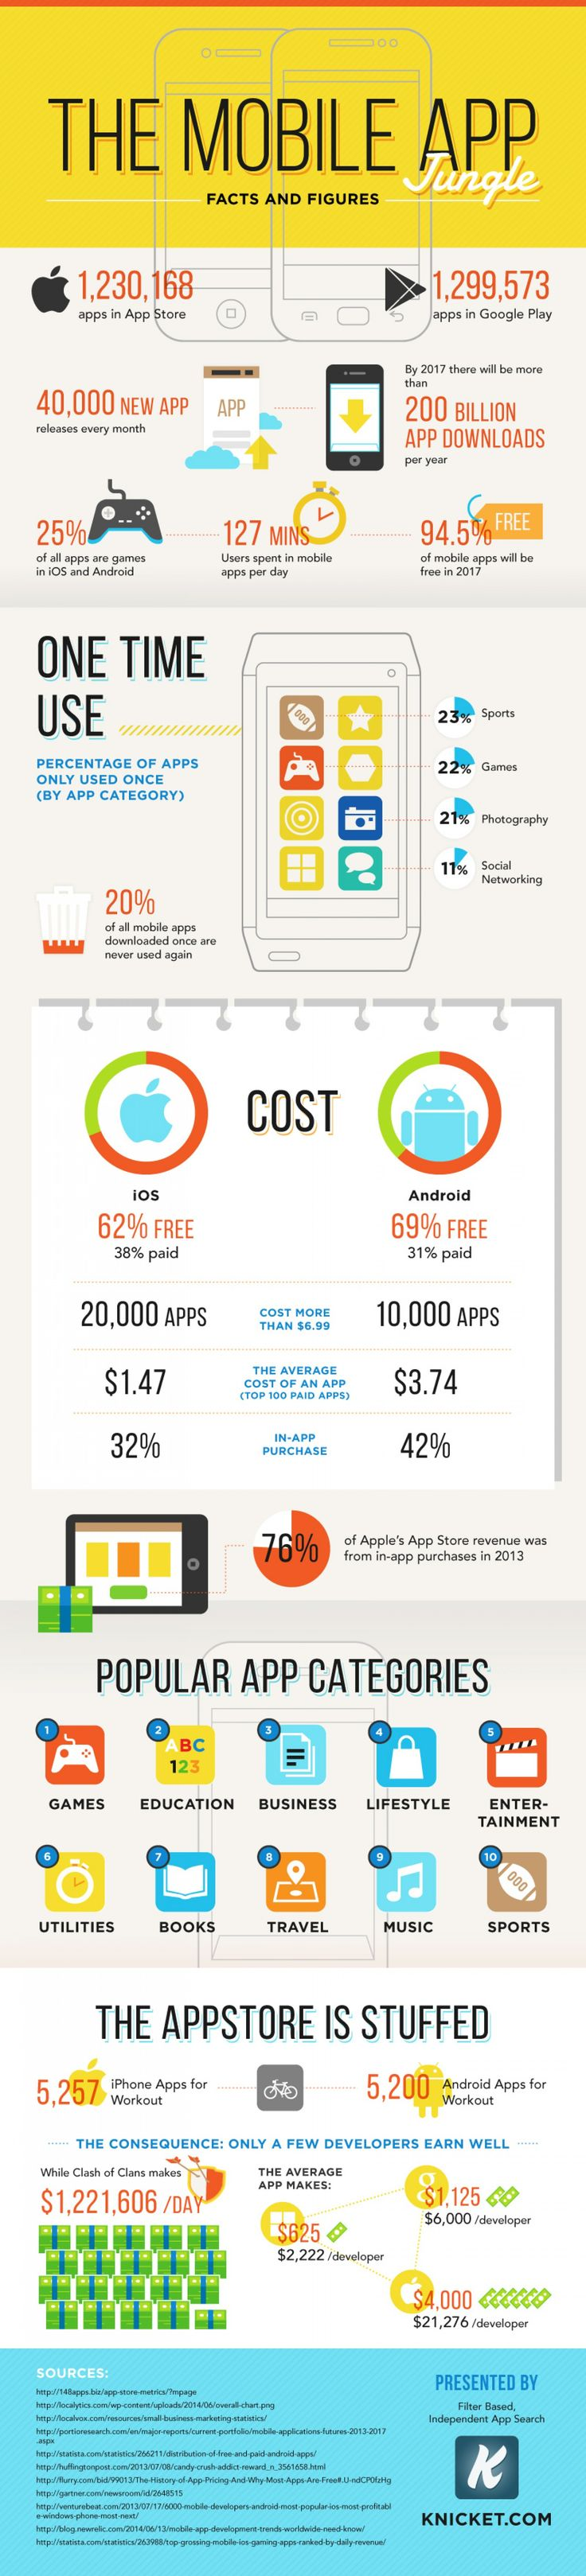 The Mobile App Jungle:  Knicket, an app discovery search engine, visually summarizing some interesting facts and numbers of the current mobile app industry. Some stats include that by 2017, it is expected that there will be more than 200 billion app downloads per year and 94.5% of all mobile apps will be free. This is significant as the average person spends 127 minutes in mobile apps per day....@shirlero